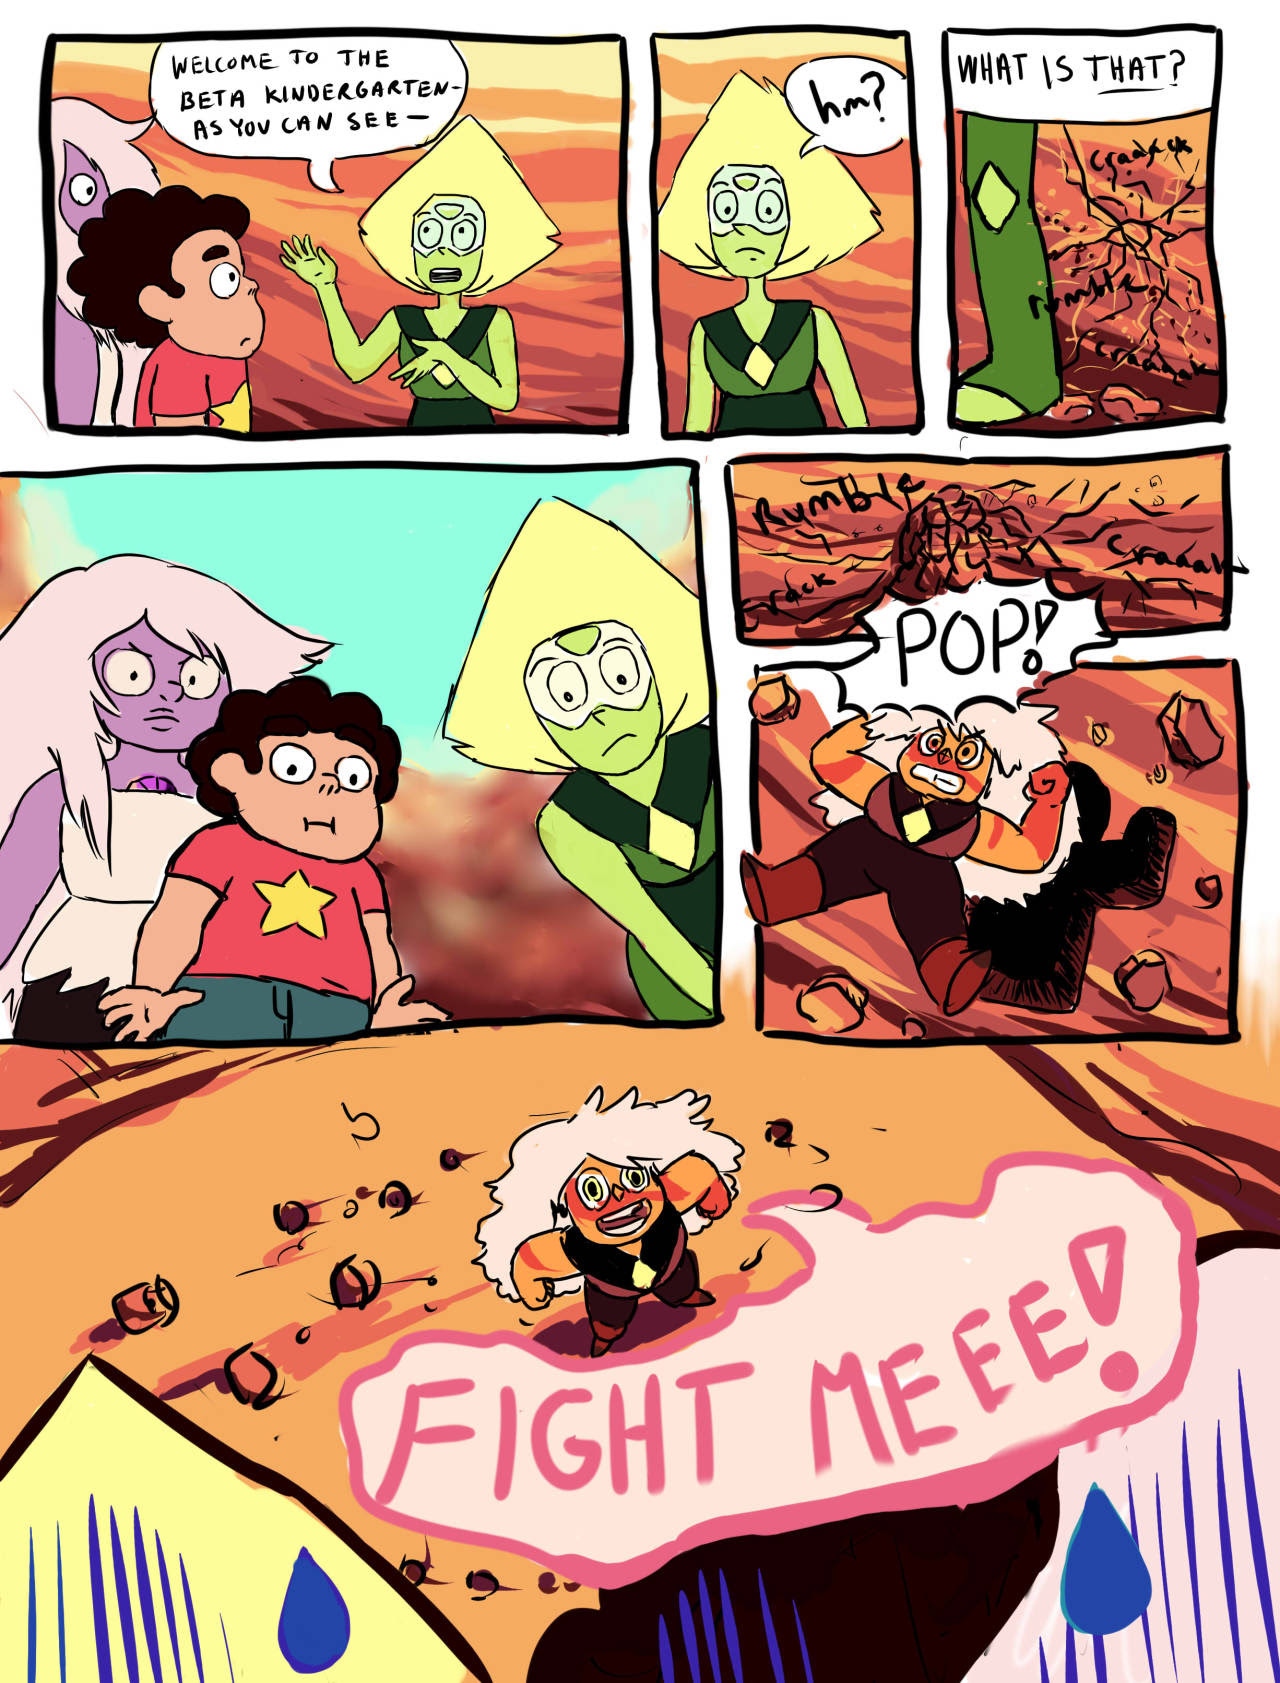 My partner pointed out to me that if that if Amethyst being overcoked make her smaller, then wouldn't a Jasper that is even more overcooked be even smaller?